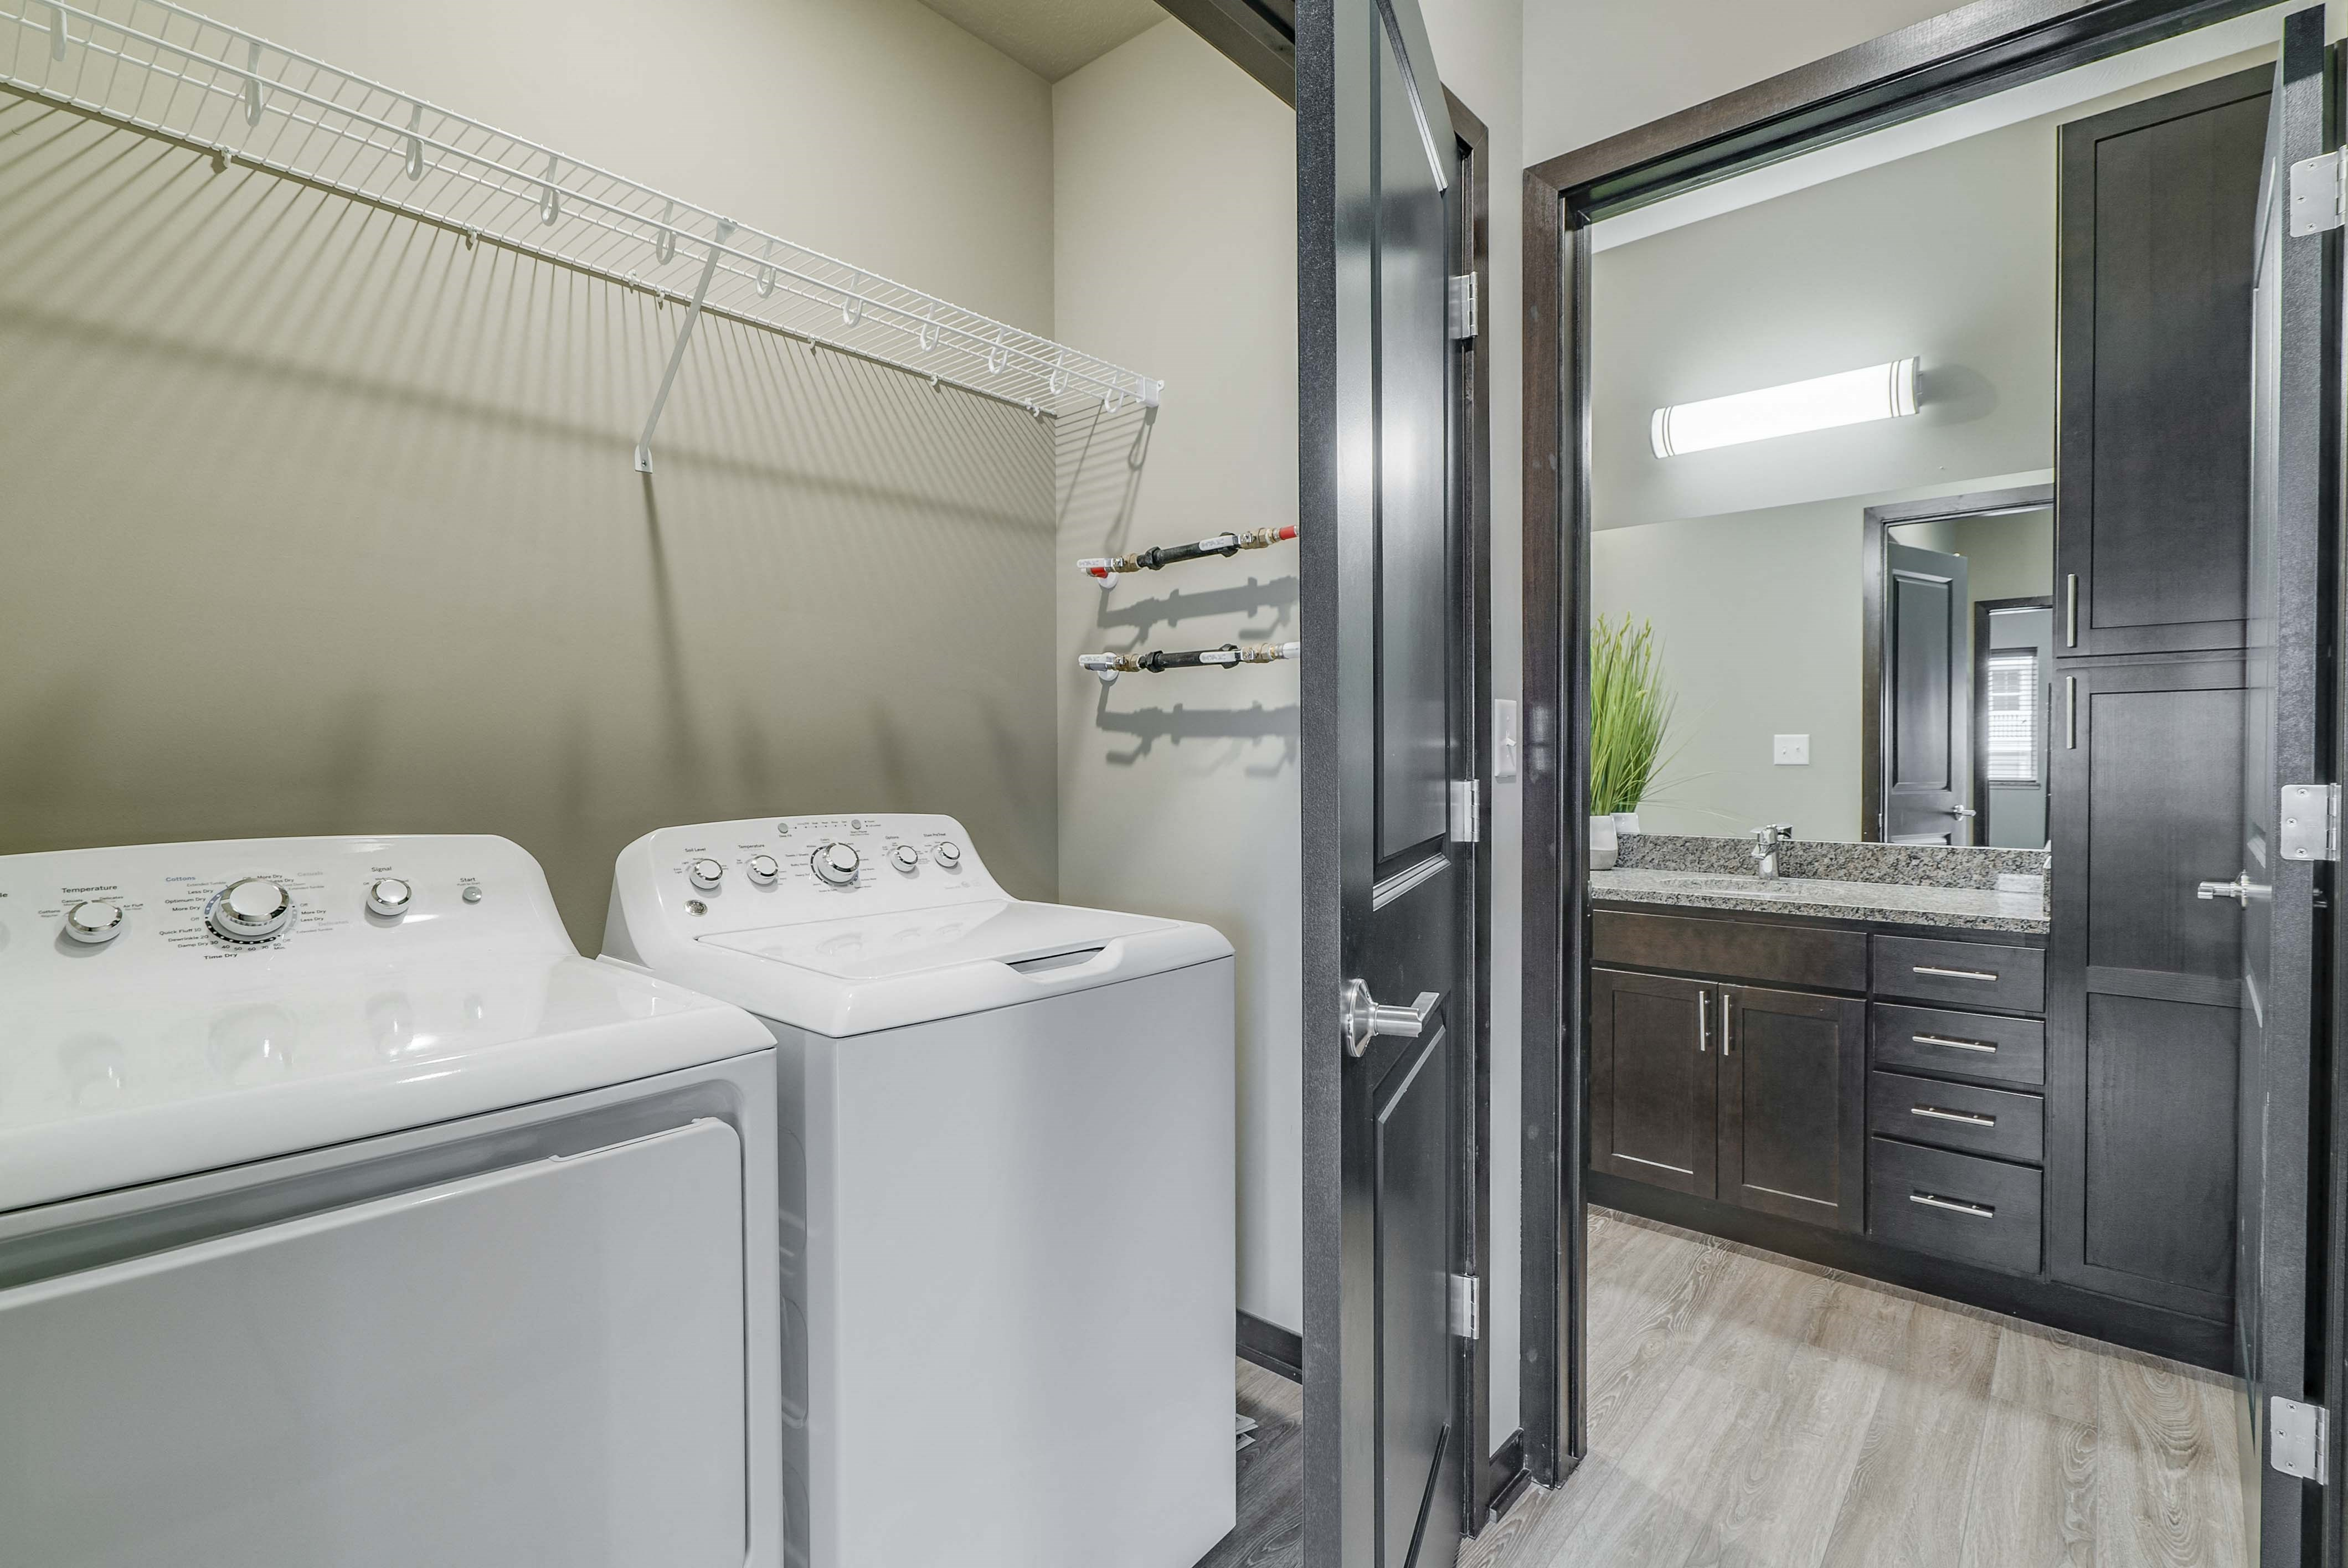 Laundry area and spacious bathroom at WH Flats new luxury apartments in south Lincoln NE 68516